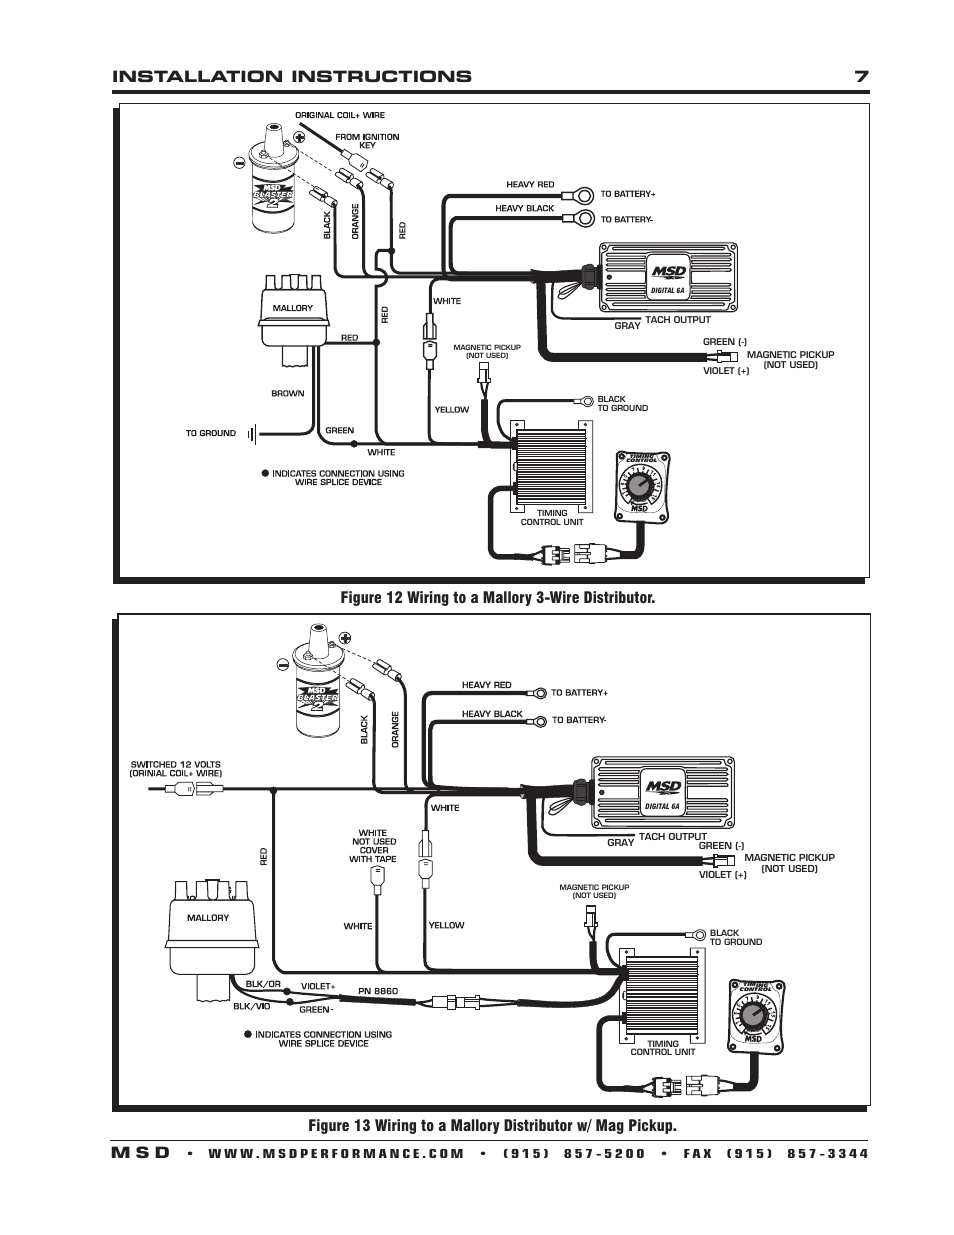 Msd Ignition Wiring Diagram As Well Msd 8680 Wiring Diagram On Msd